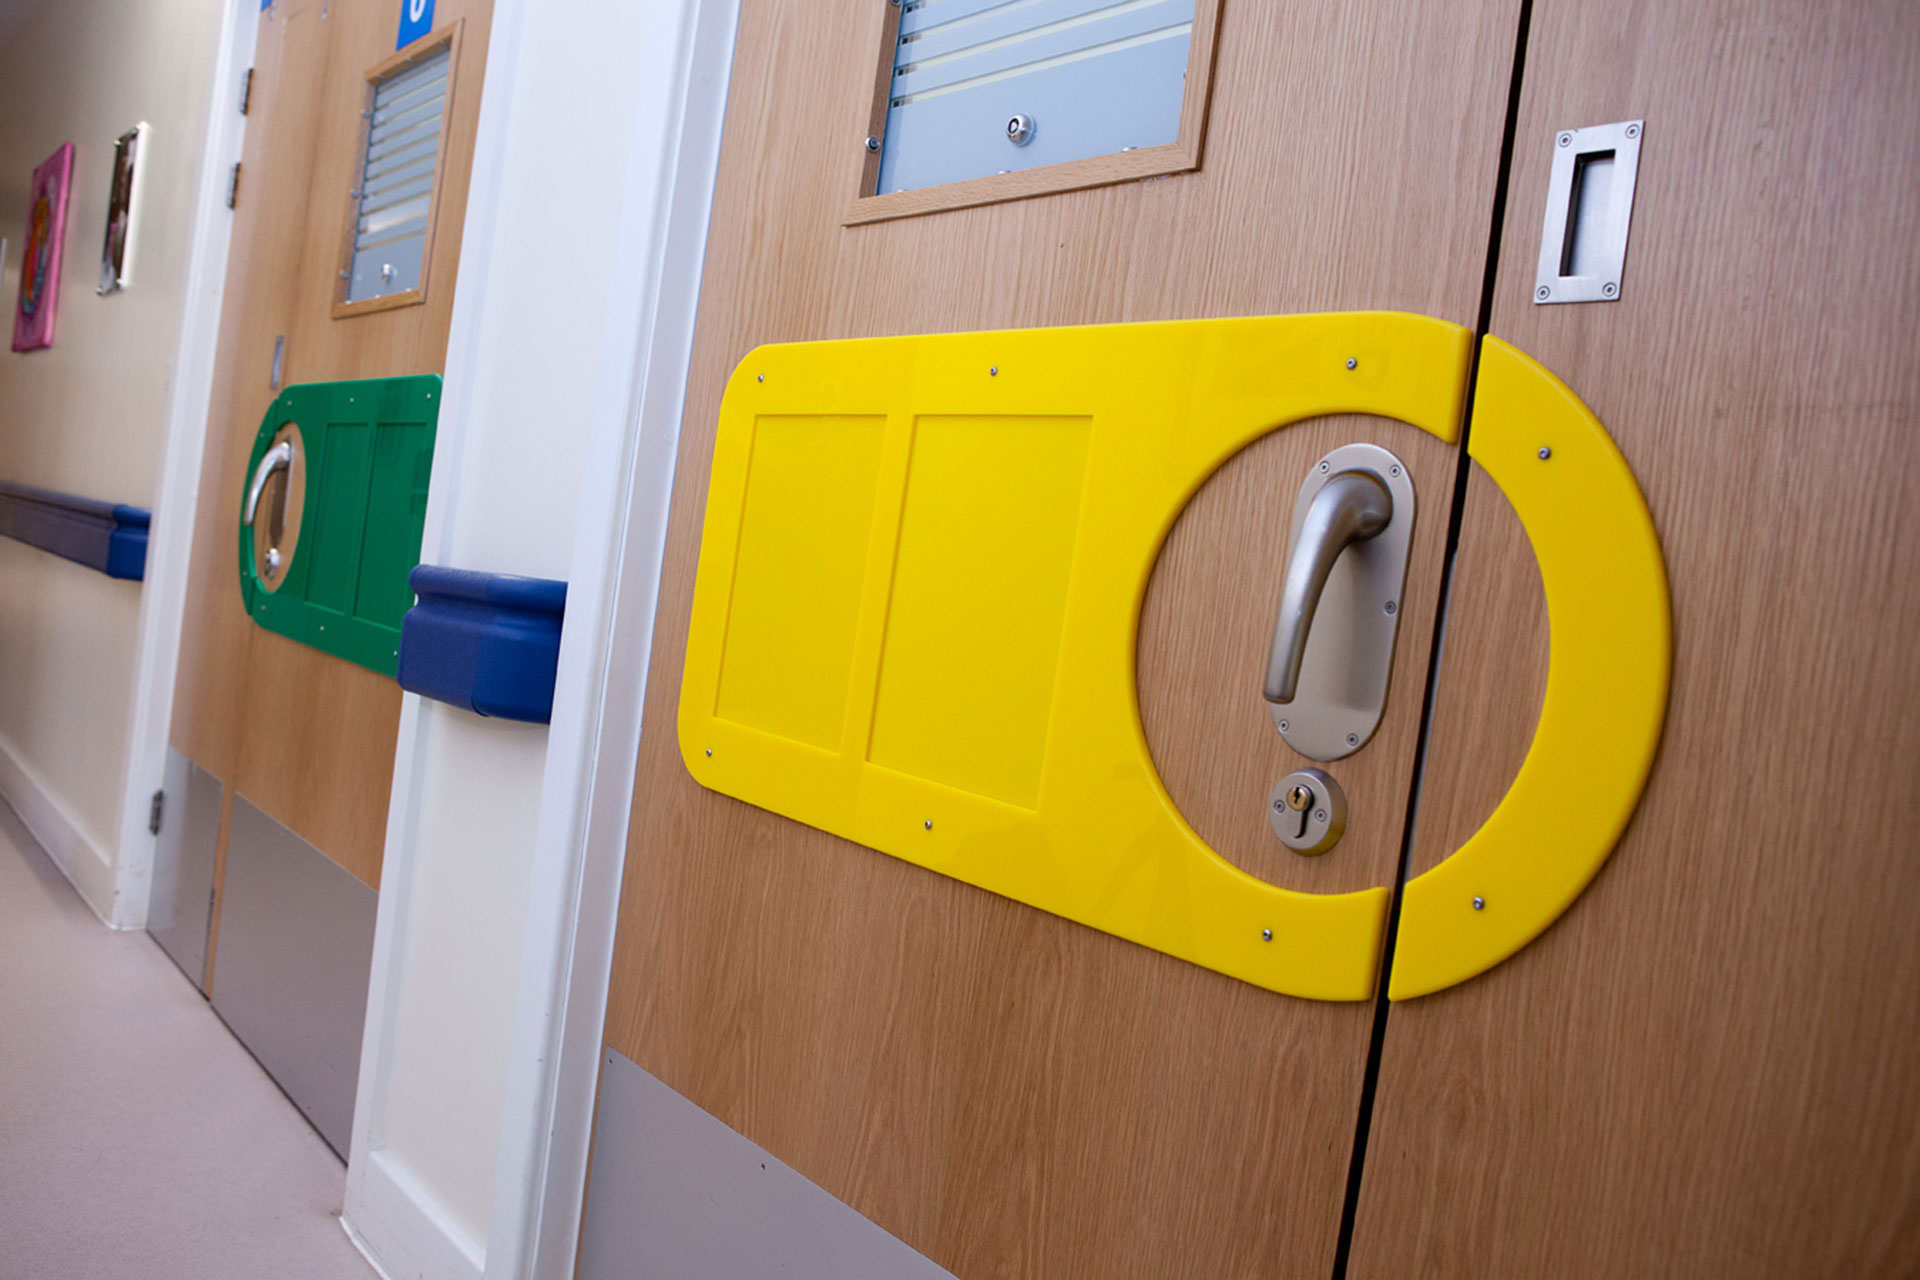 Colourful wayfinding sign to help patients with limited memory designed by Boex